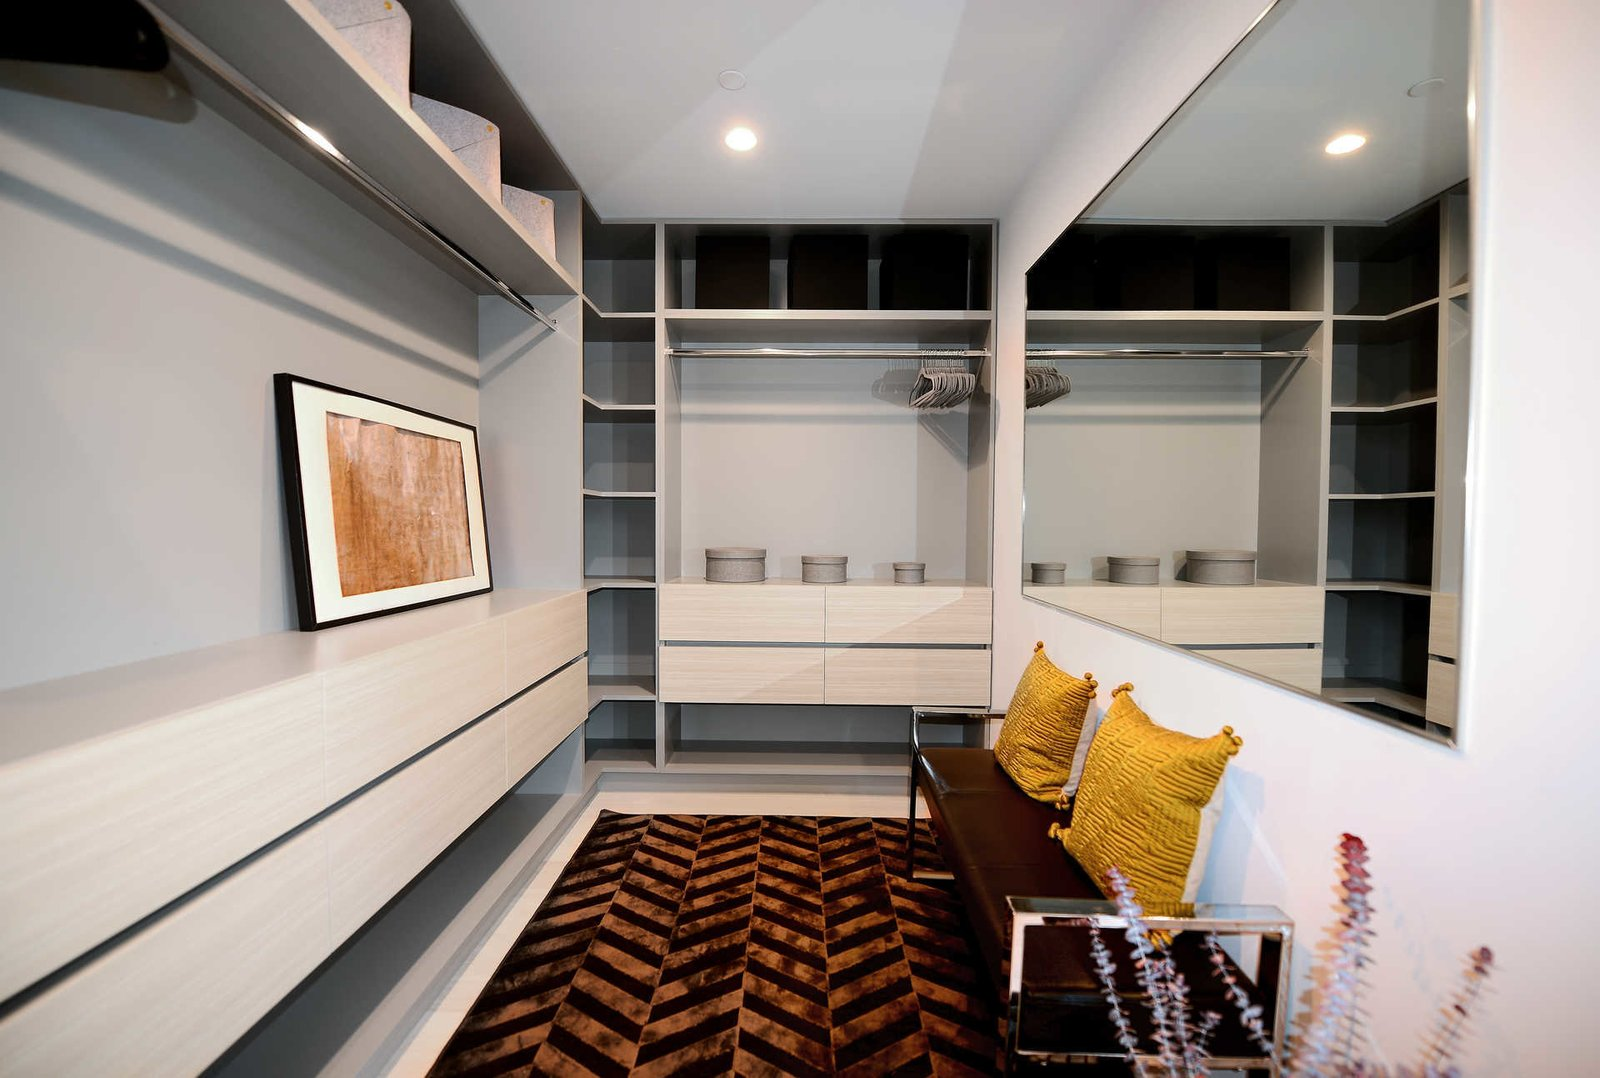 Tagged: Closet Storage Type, Shelves Storage Type, Hallway, and Rug Floor.  Italian Modernist Home by Zillow